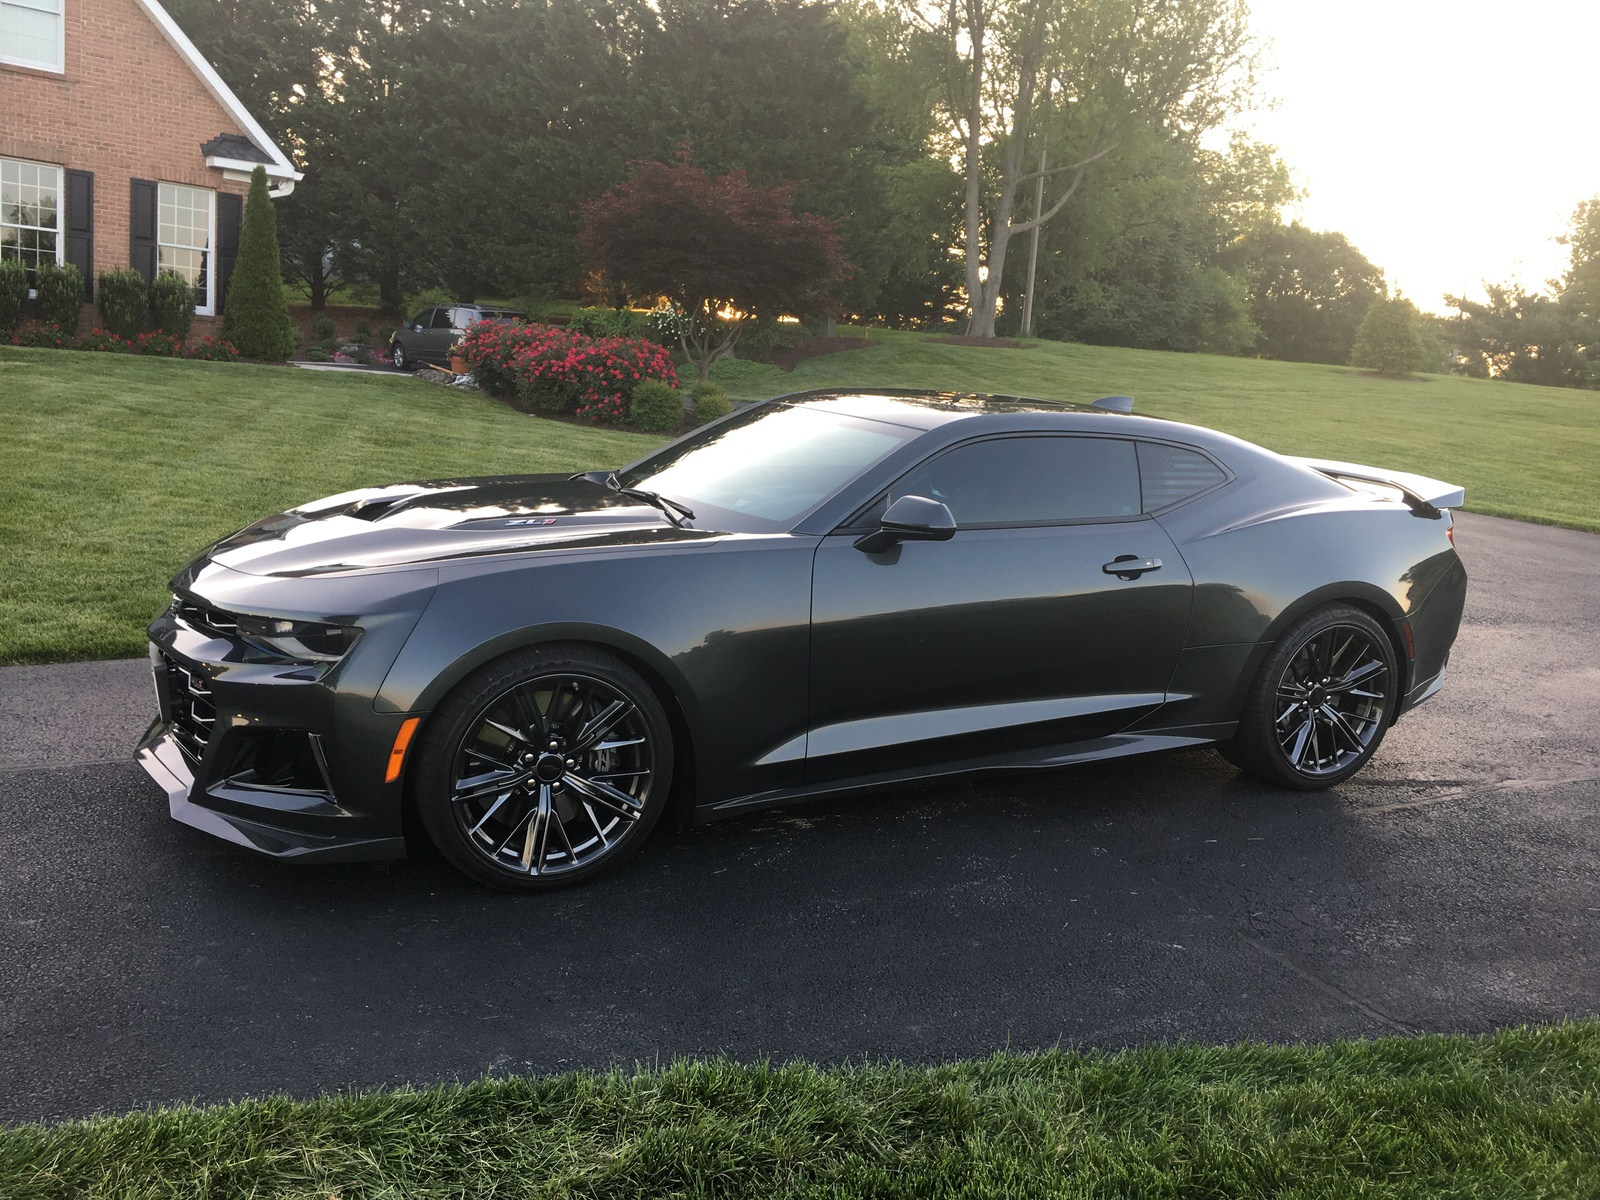 Stock 2018 Chevrolet Camaro ZL1 14 Mile Trap Speeds 0 60